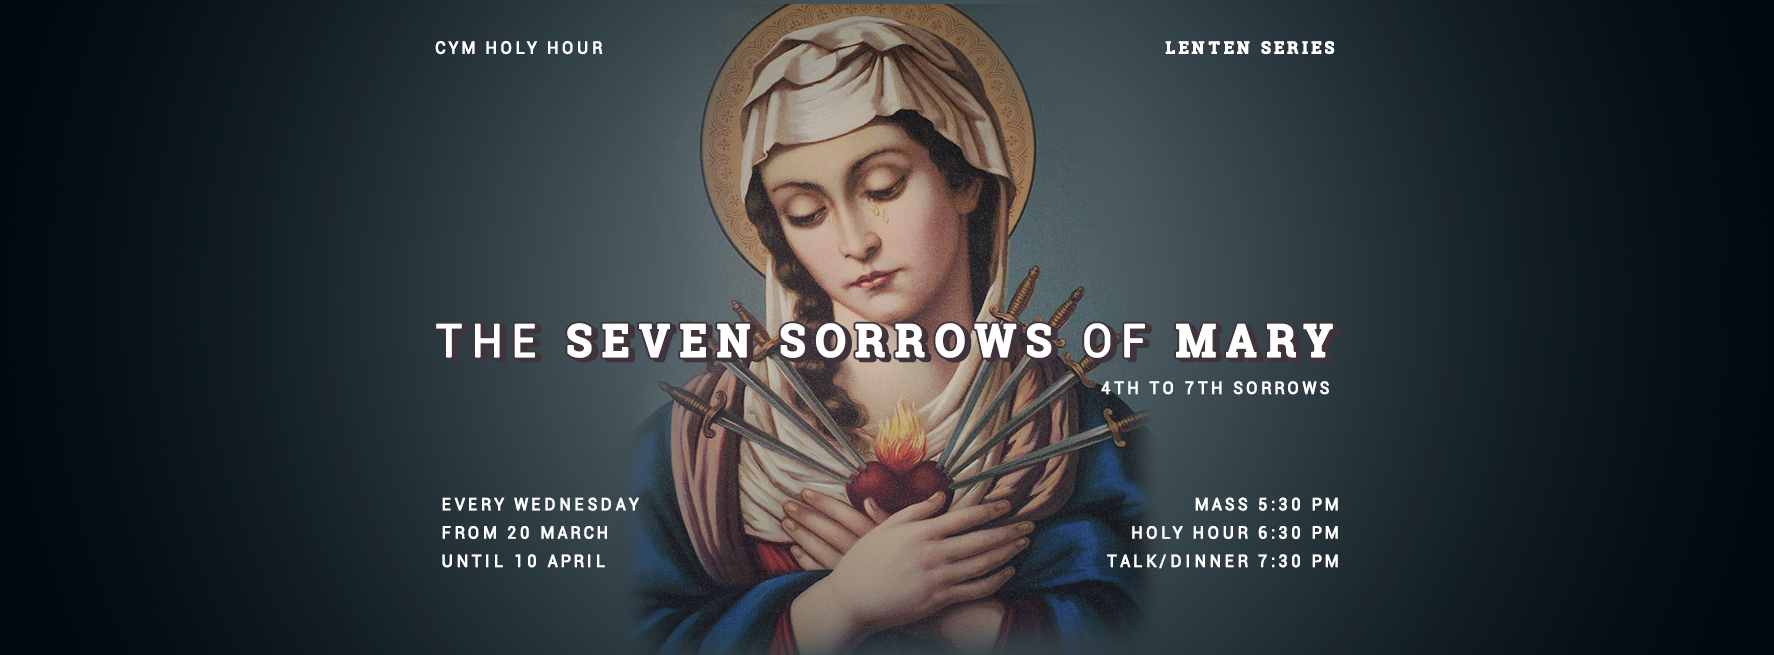 CYM Lenten Series - The 7 Sorrows of Mary